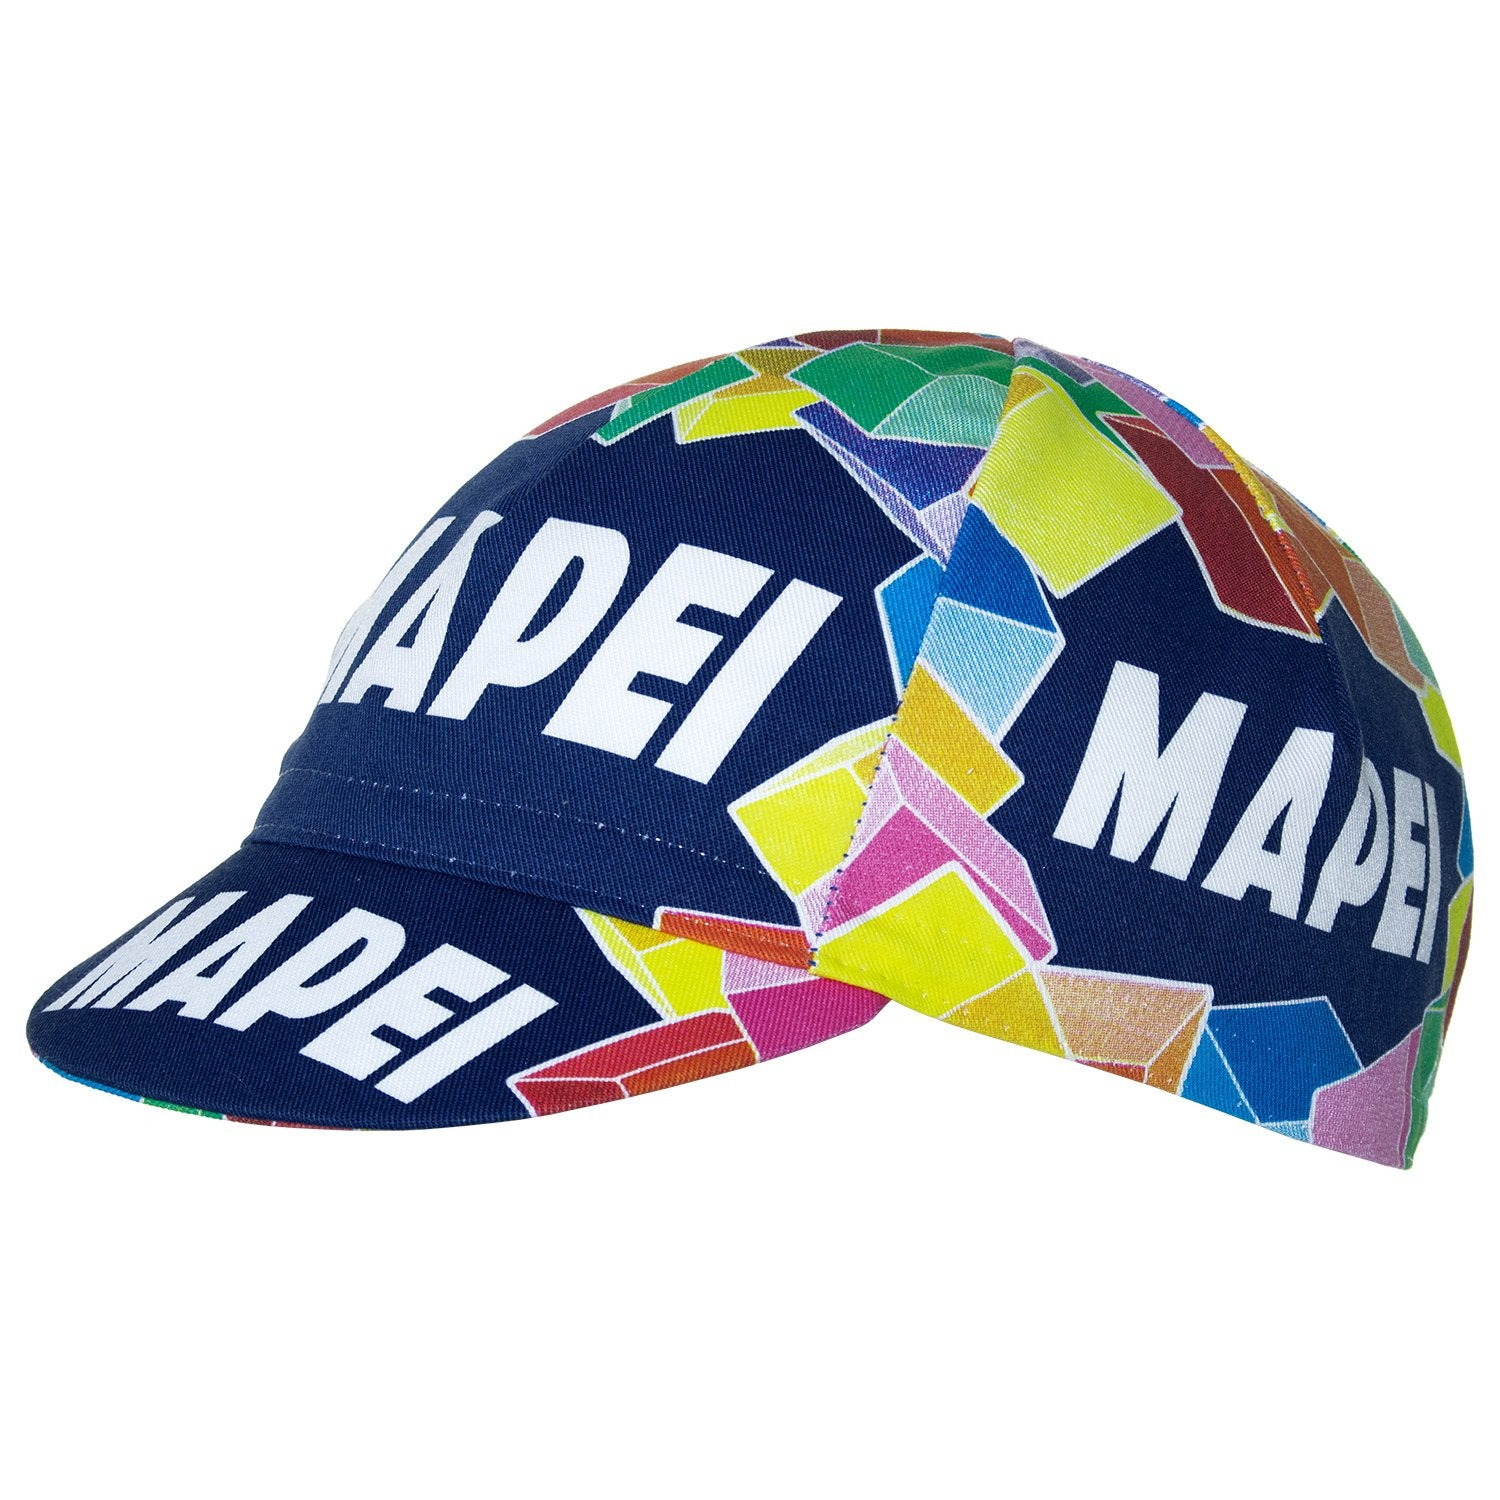 Cycling cloth cap MAPEI